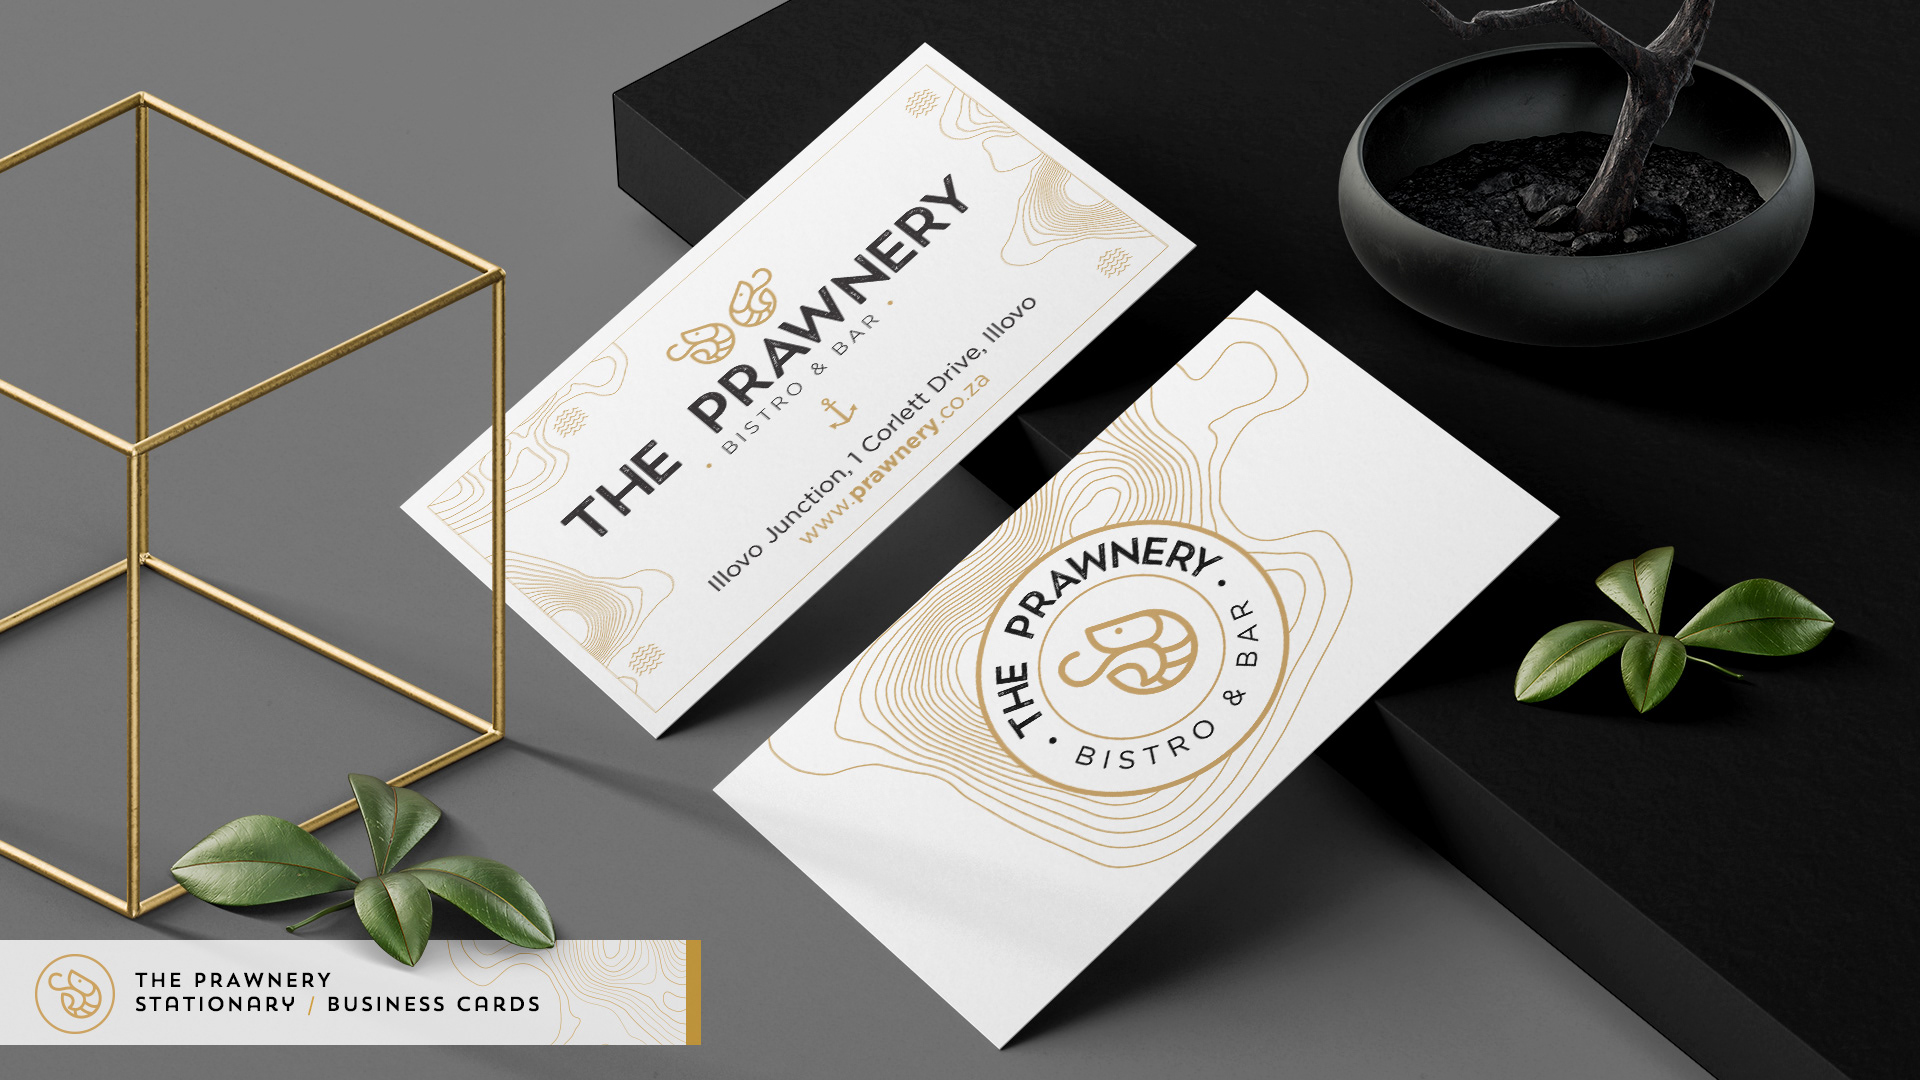 Business cards lying on a black desk with leaves and ornaments